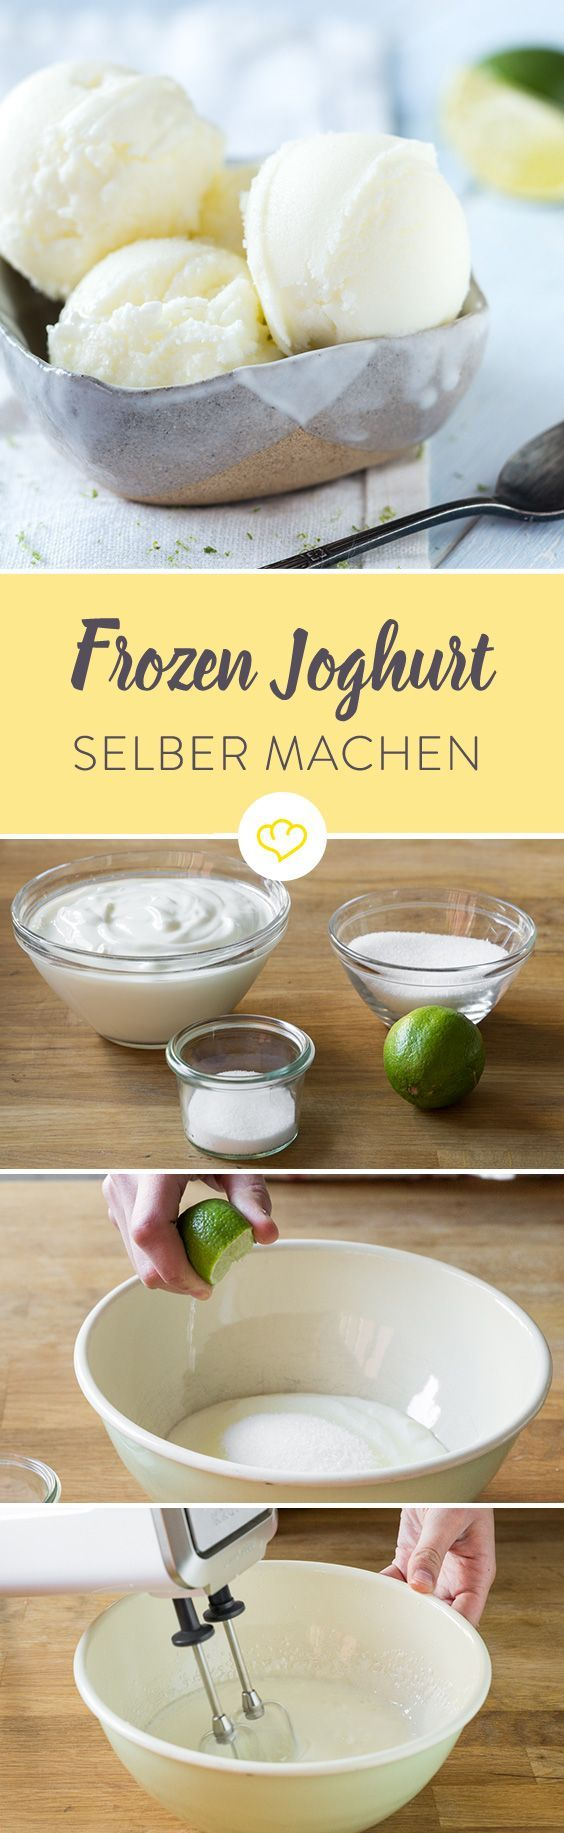 Frozen Eis Selber Machen 25+ Best Ideas About Himbeerdessert On Pinterest | Himbeer